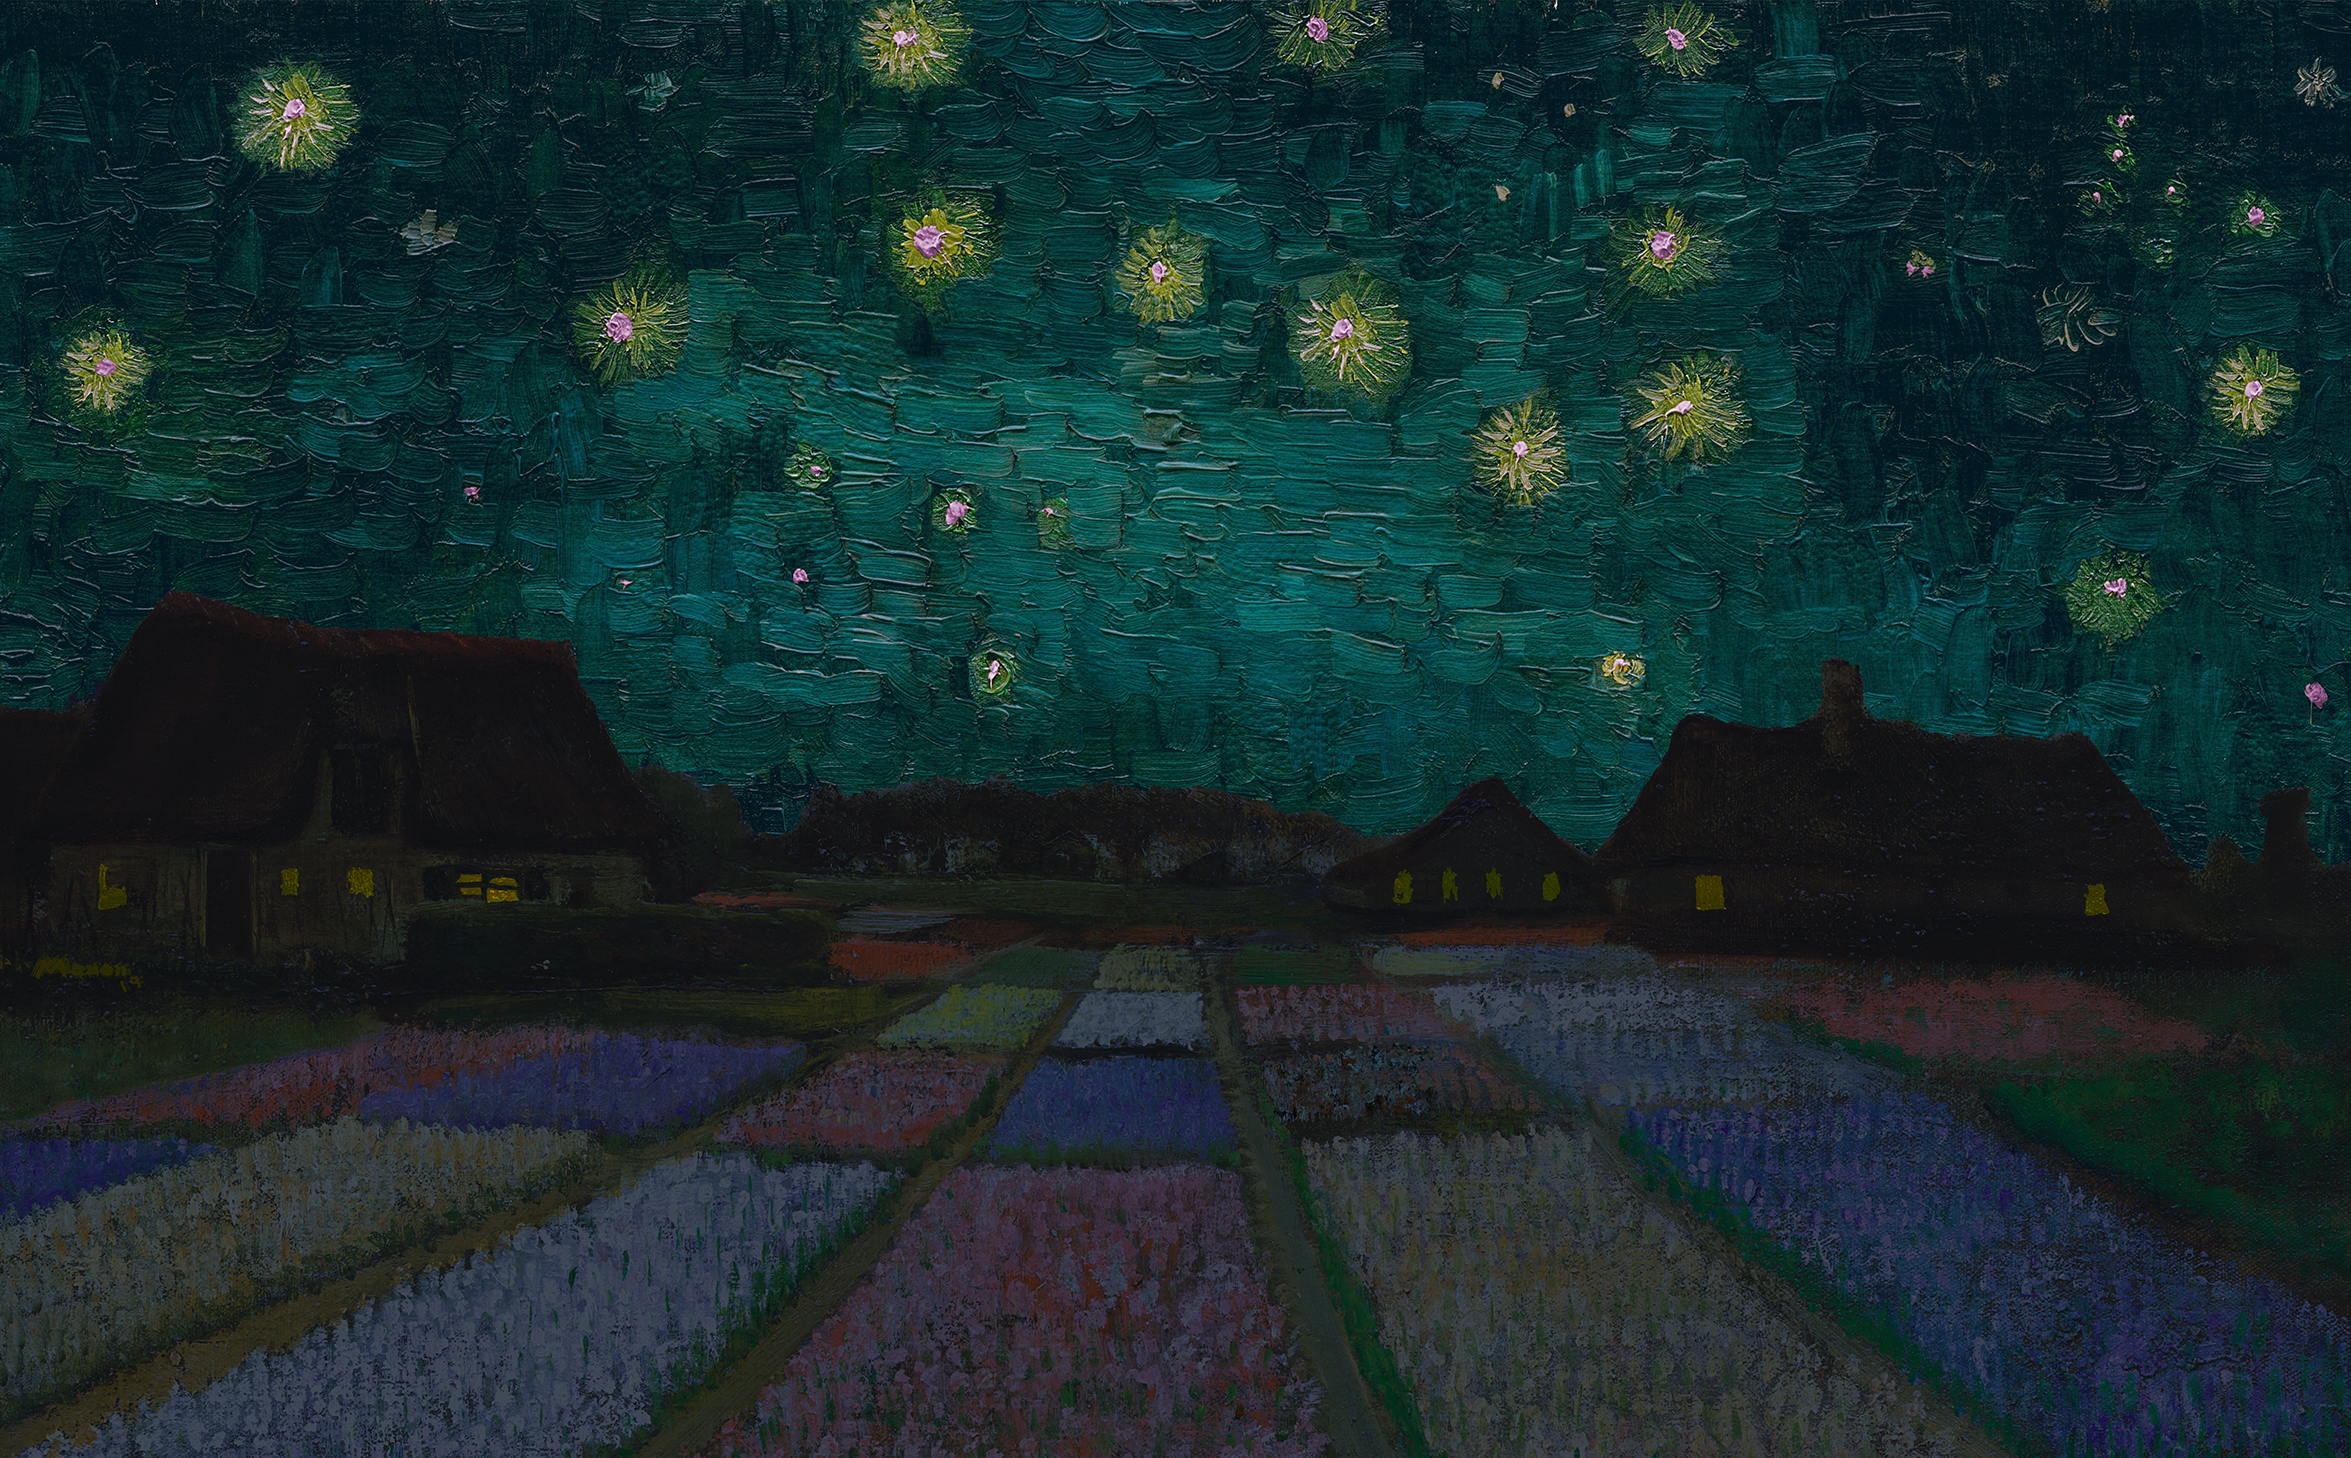 beds of flowers by houses with lights on underneath a starry night sky